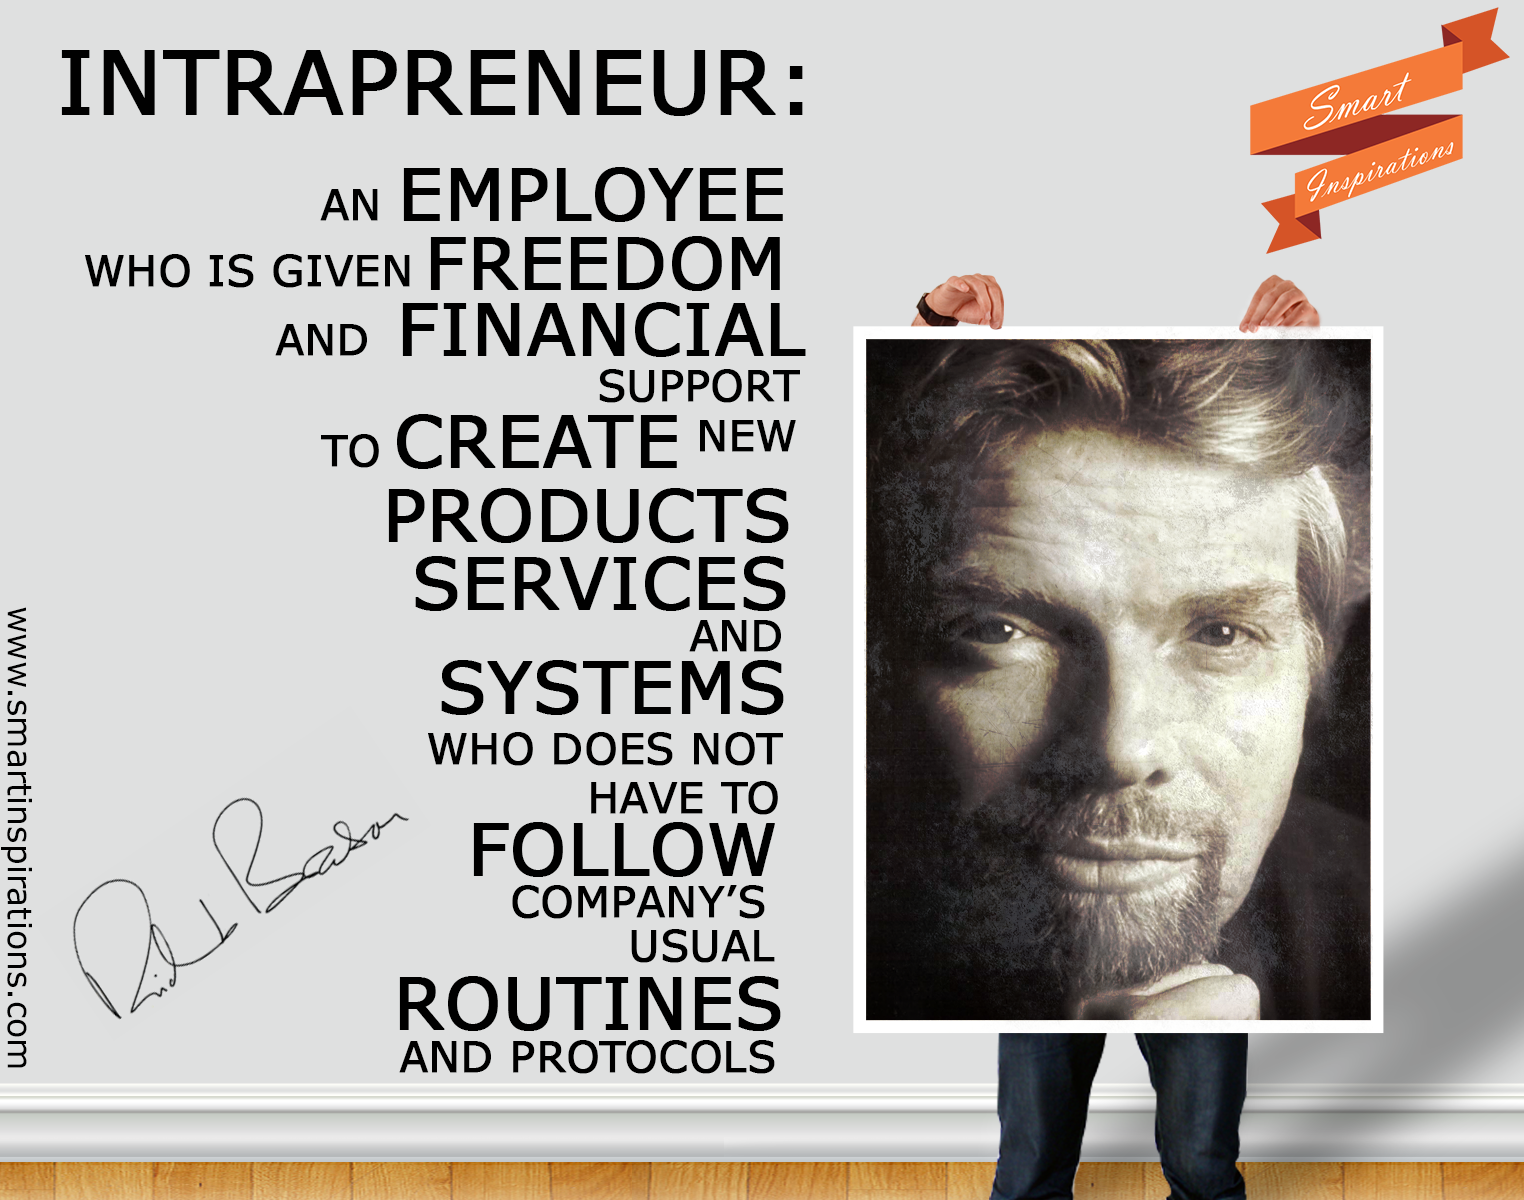 richard branson strategic leadership Branson hires bright people, gives them a stake in his ventures so that they are motivated to be even more successful and then delegates while his staff often takes care of the daily operations of a company, branson focuses his time more on the end user experience, doing publicity and promoting his products.